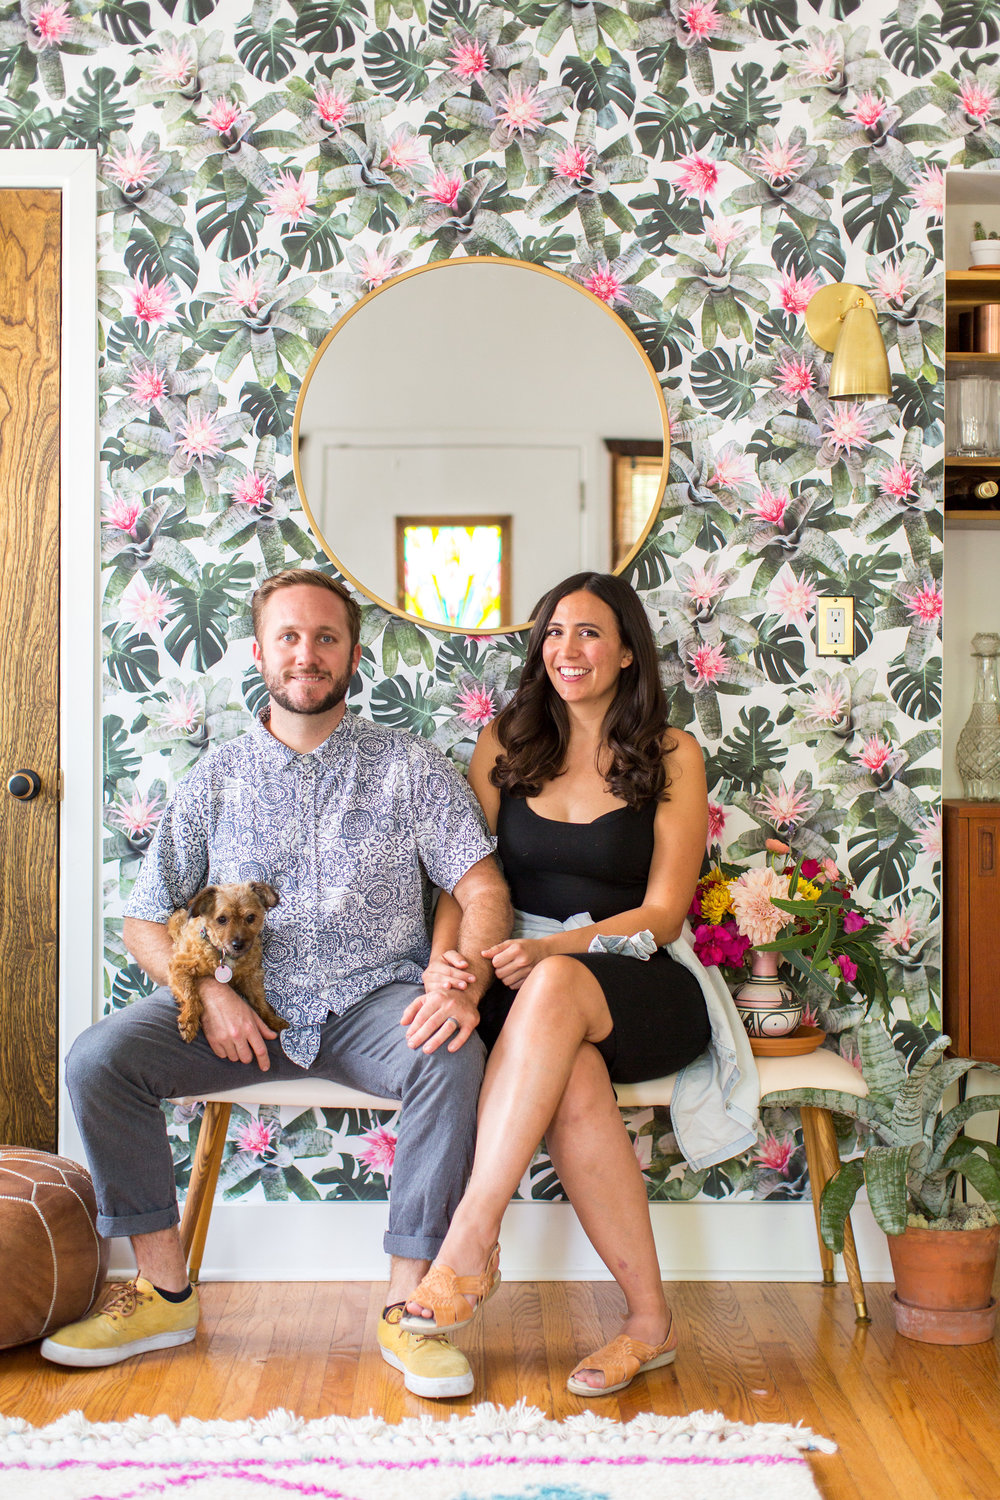 Samantha Santana & her husband James Lively in her home studio, featuring her rad bromeliad wallpaper. Oh, and their puppy Animal is there too.